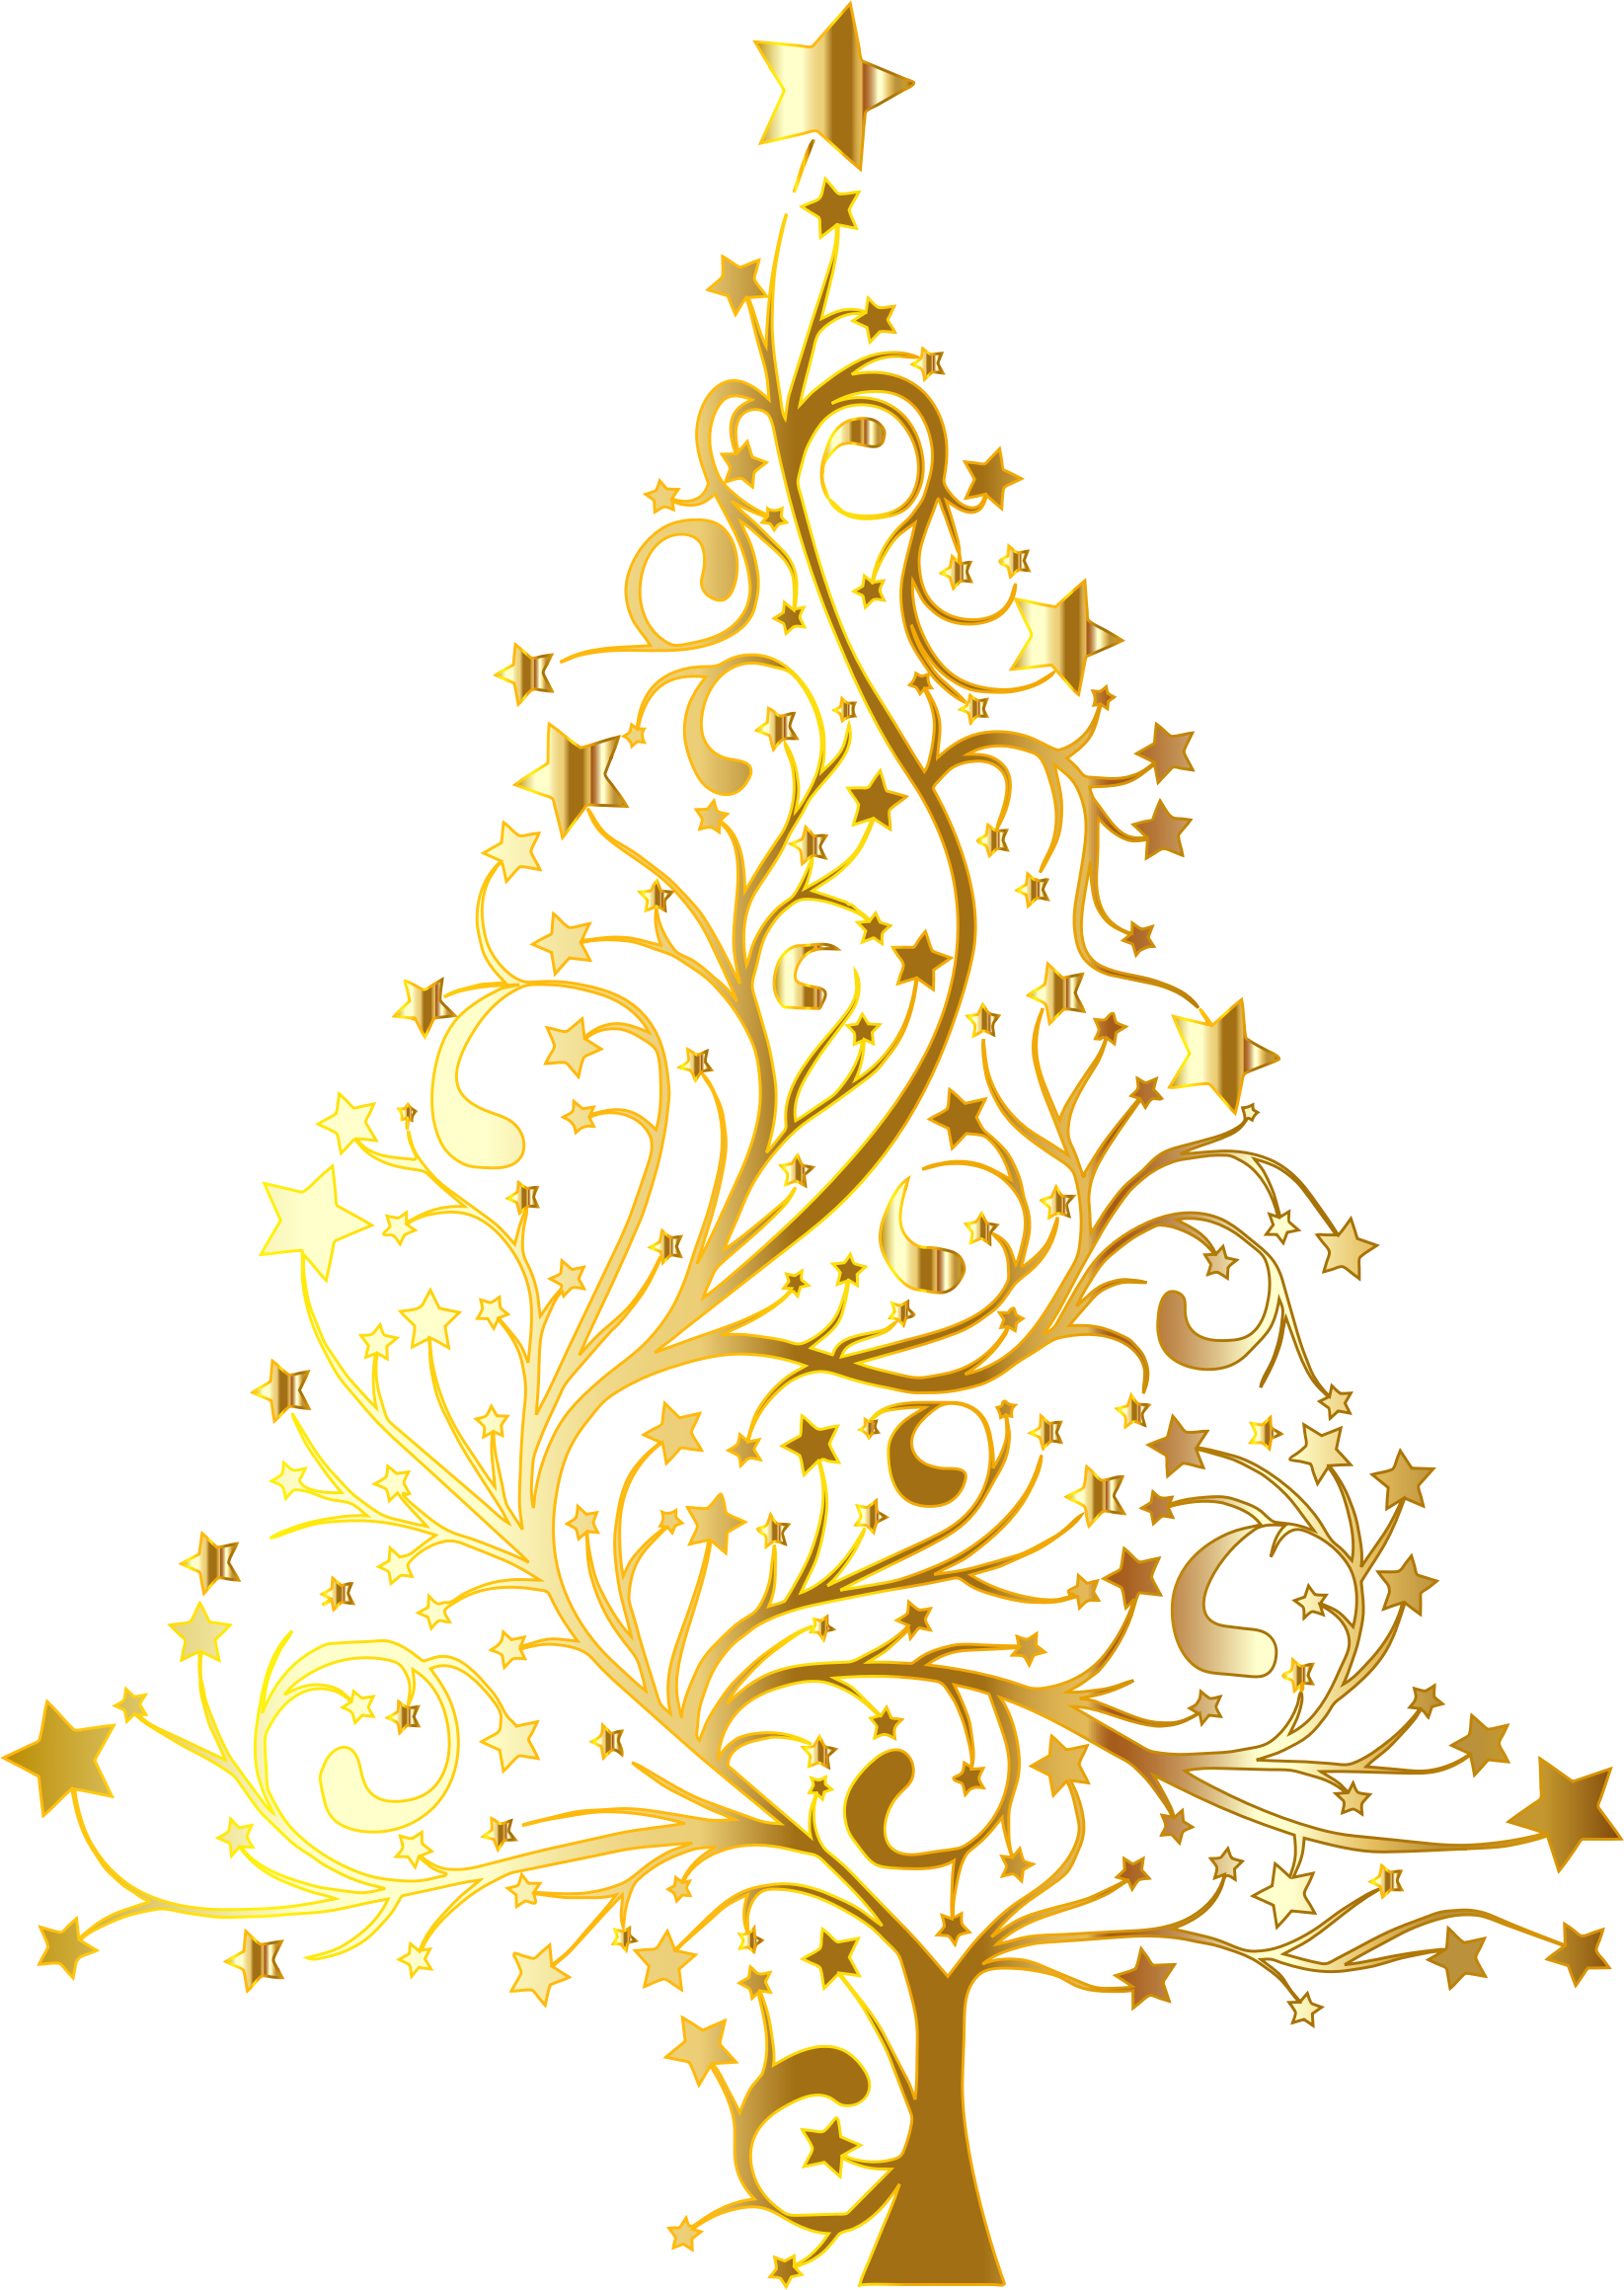 Christmas bunting clipart image library library Starry Christmas Tree Gold No Background by GDJ | Christmas ... image library library